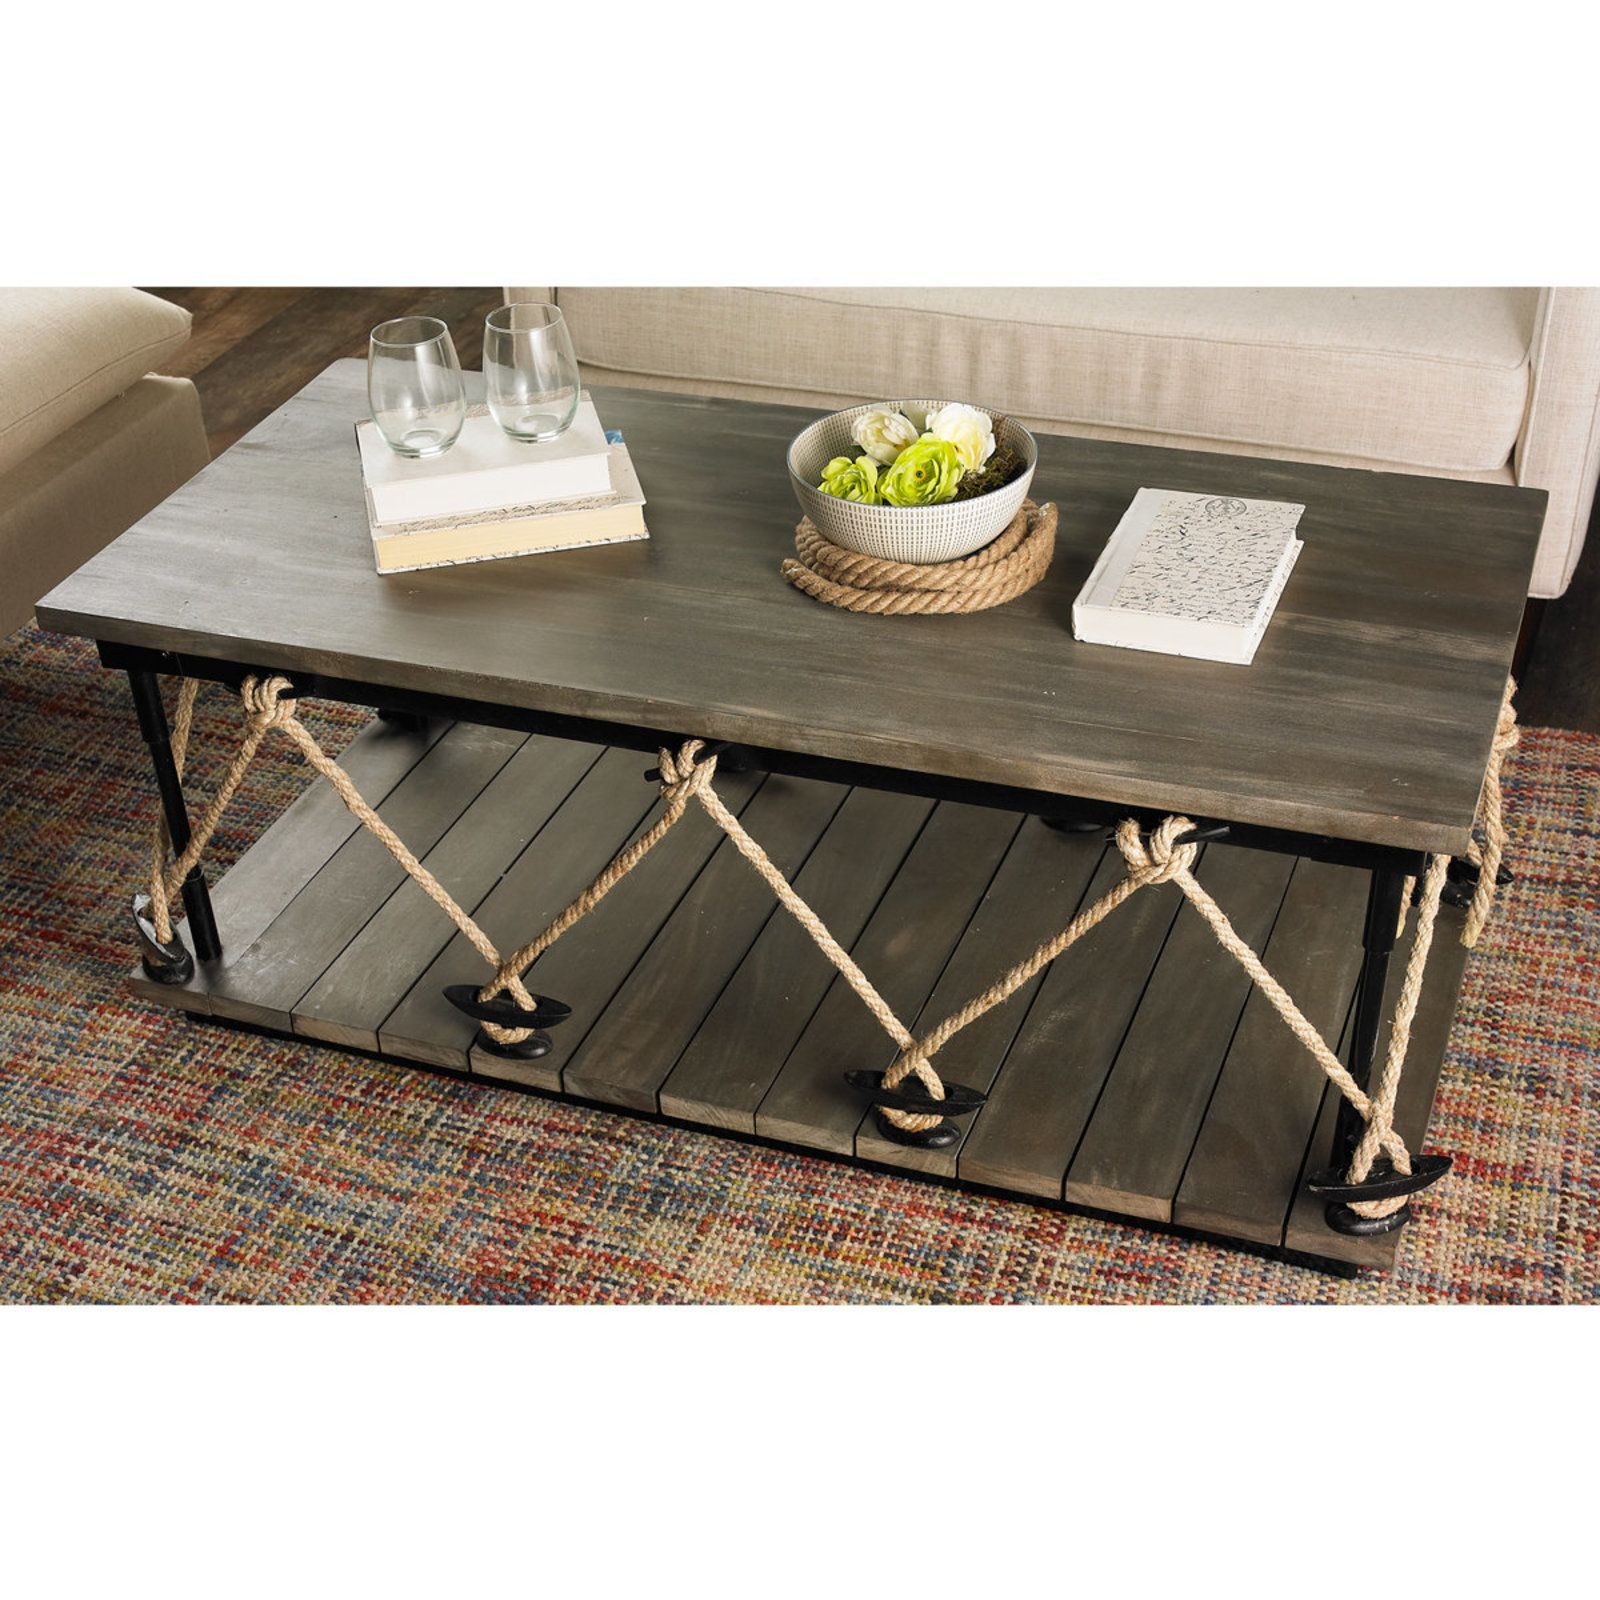 Industrial Rope and Wood Coffee Table